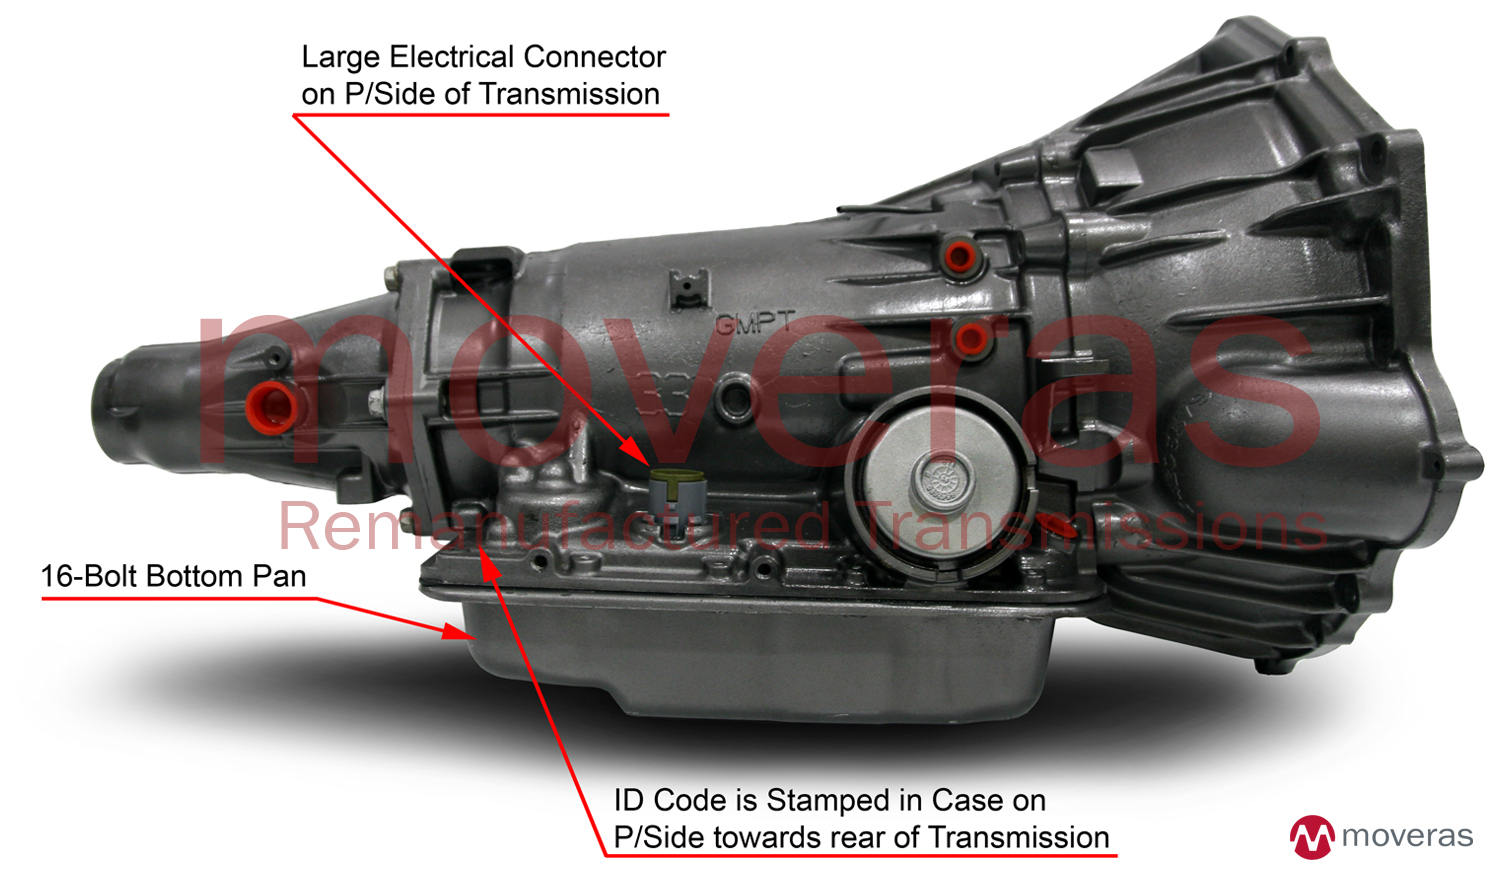 Gm 4l60e Transmission Diagram Trusted Wiring Id Tad Free Download U2022 Oasis Dl Co 4 L 60 E